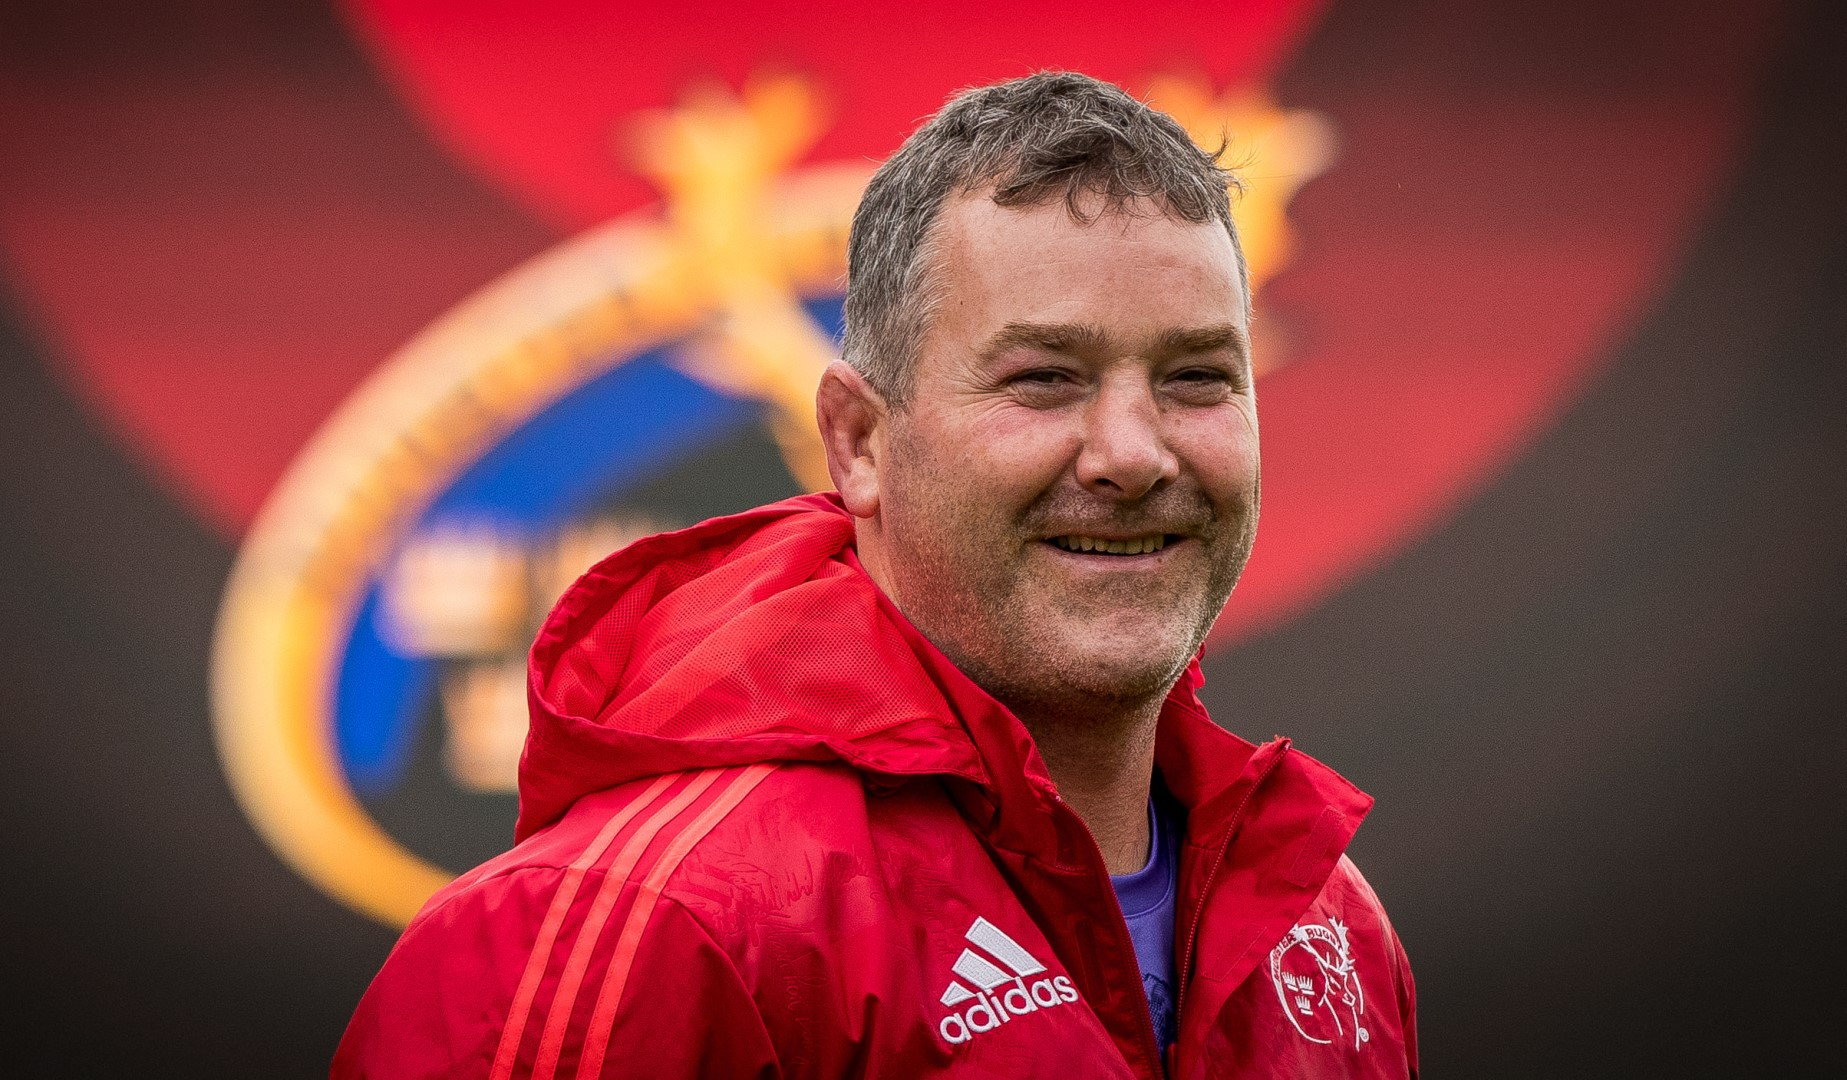 Gatland pays tribute to 'passionate man of Munster' Foley